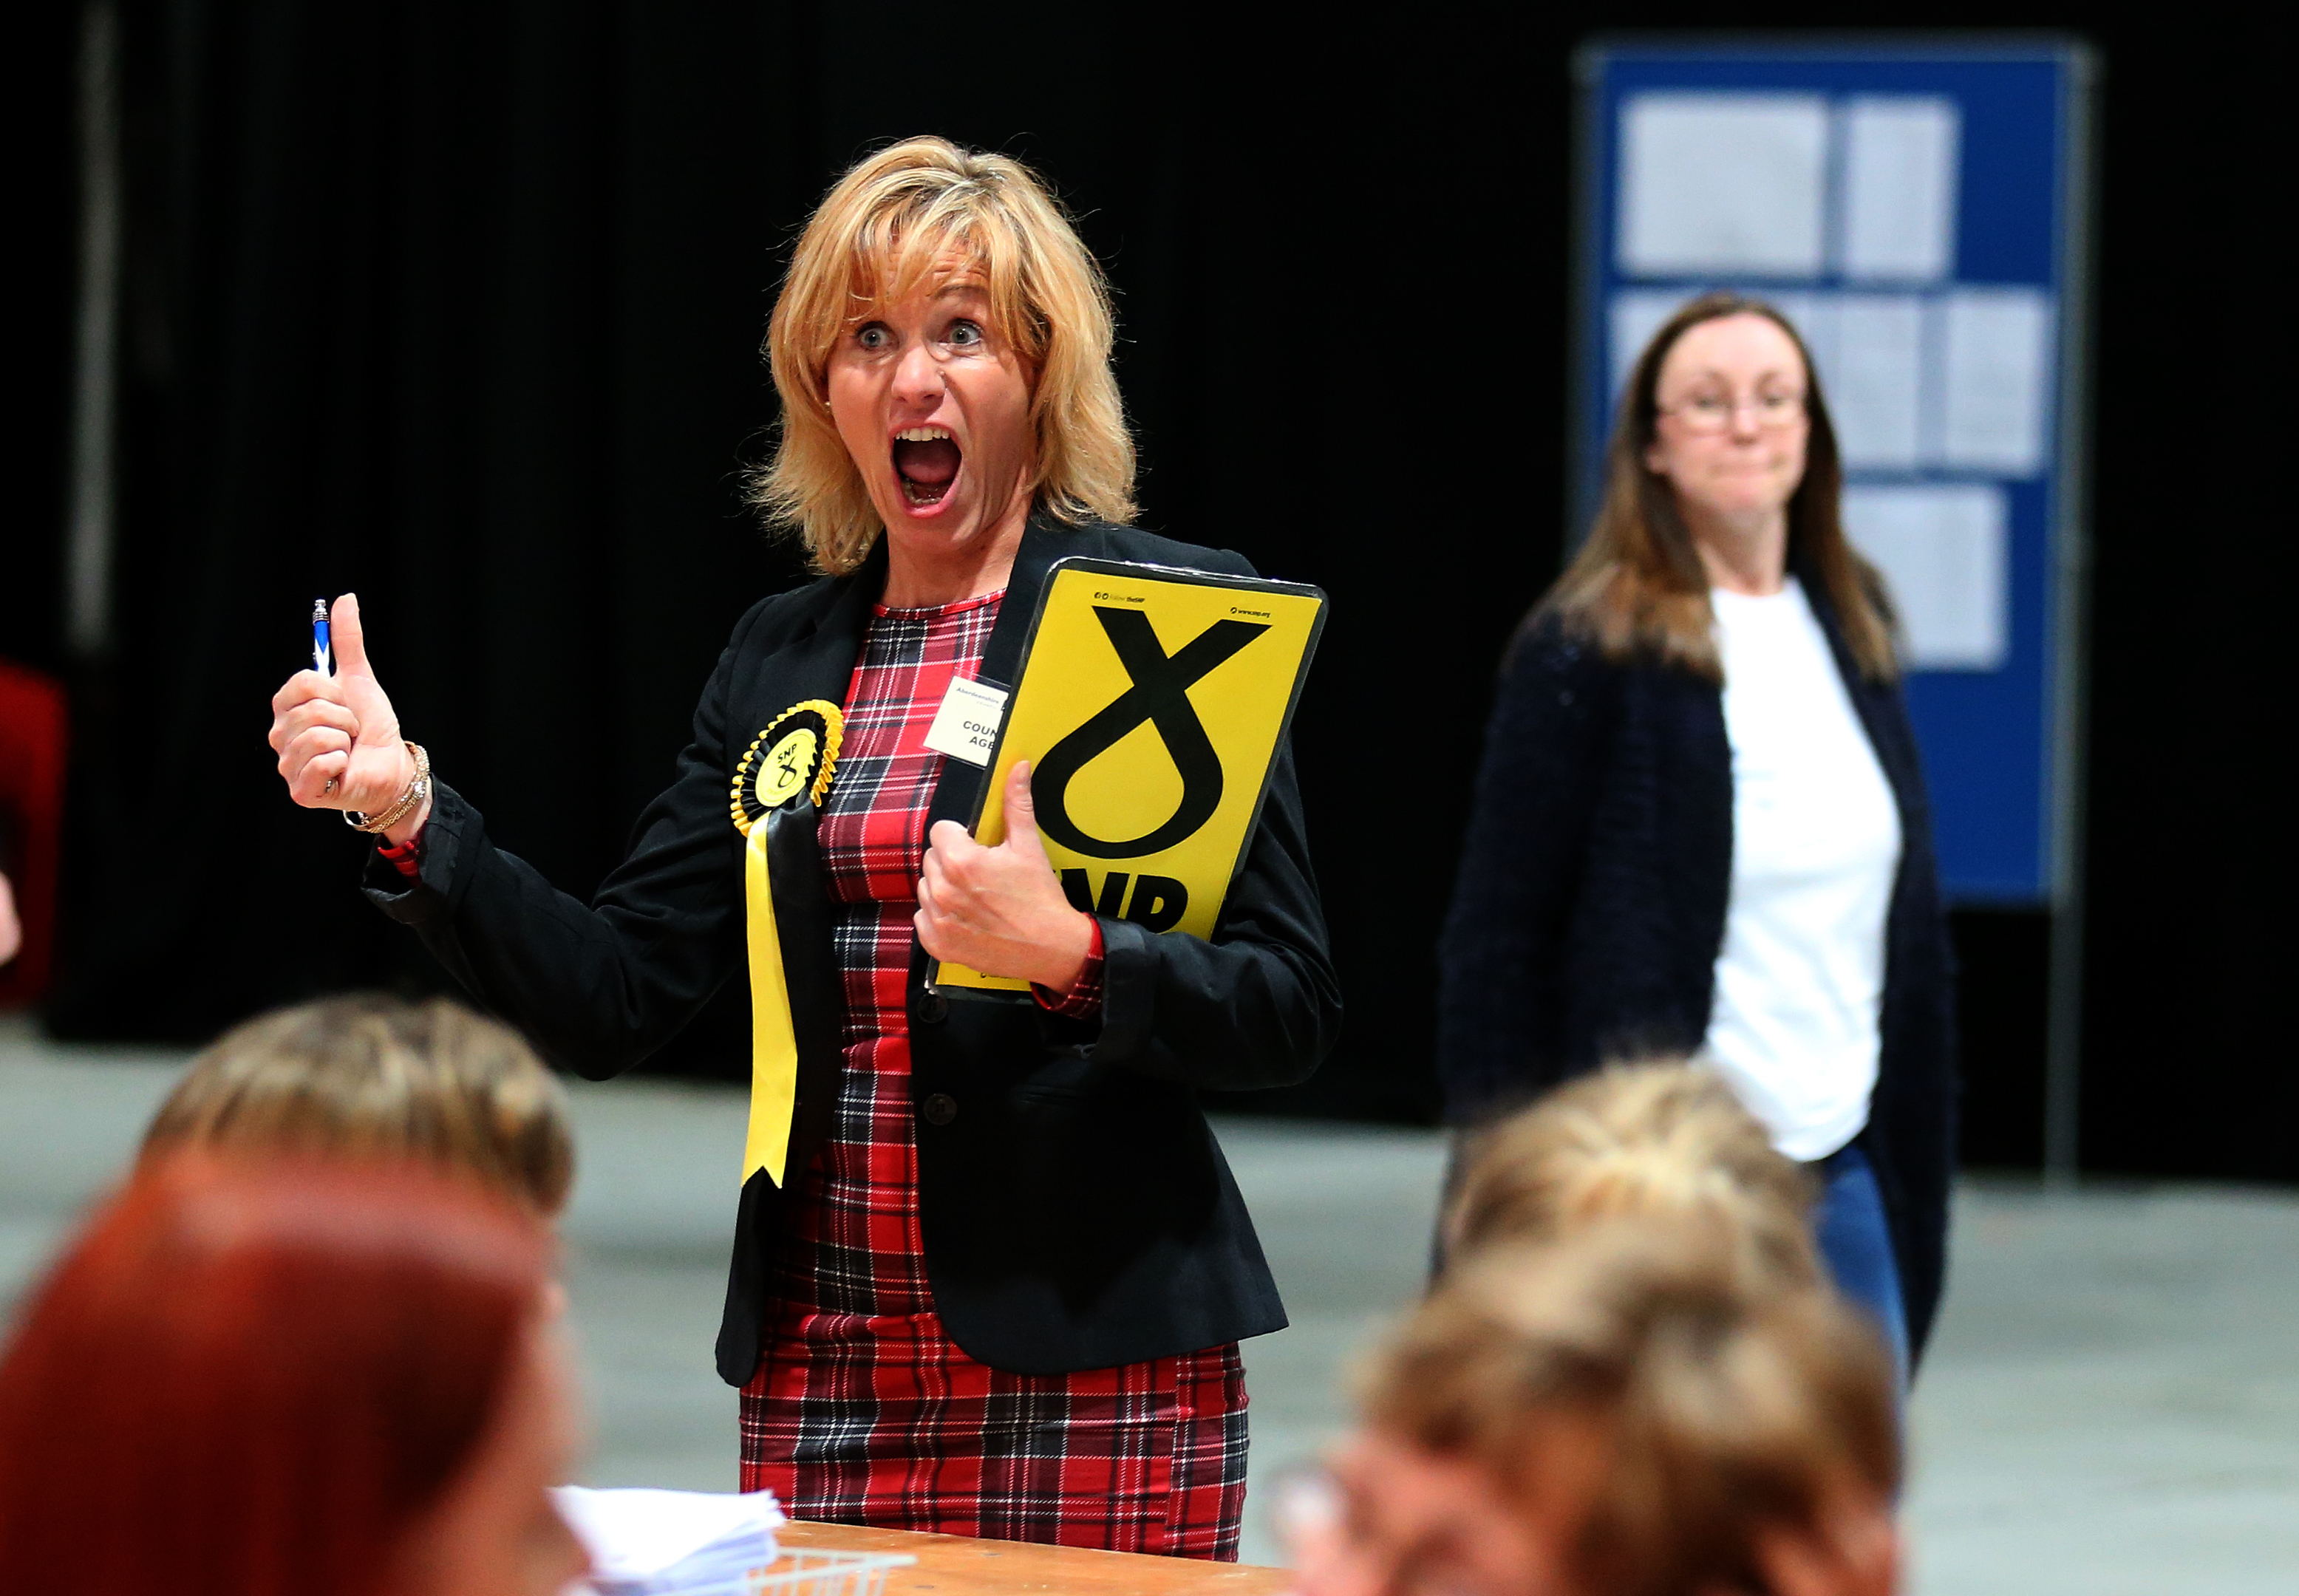 An SNP election canvasser gives the thumbs up as she views ballot papers being counted for the Banff and Buchan, Gordon and West Aberdeenshire and Kincardine constituency counts in the General Election at the Aberdeen Exhibition and Conference Centre in Aberdeen.